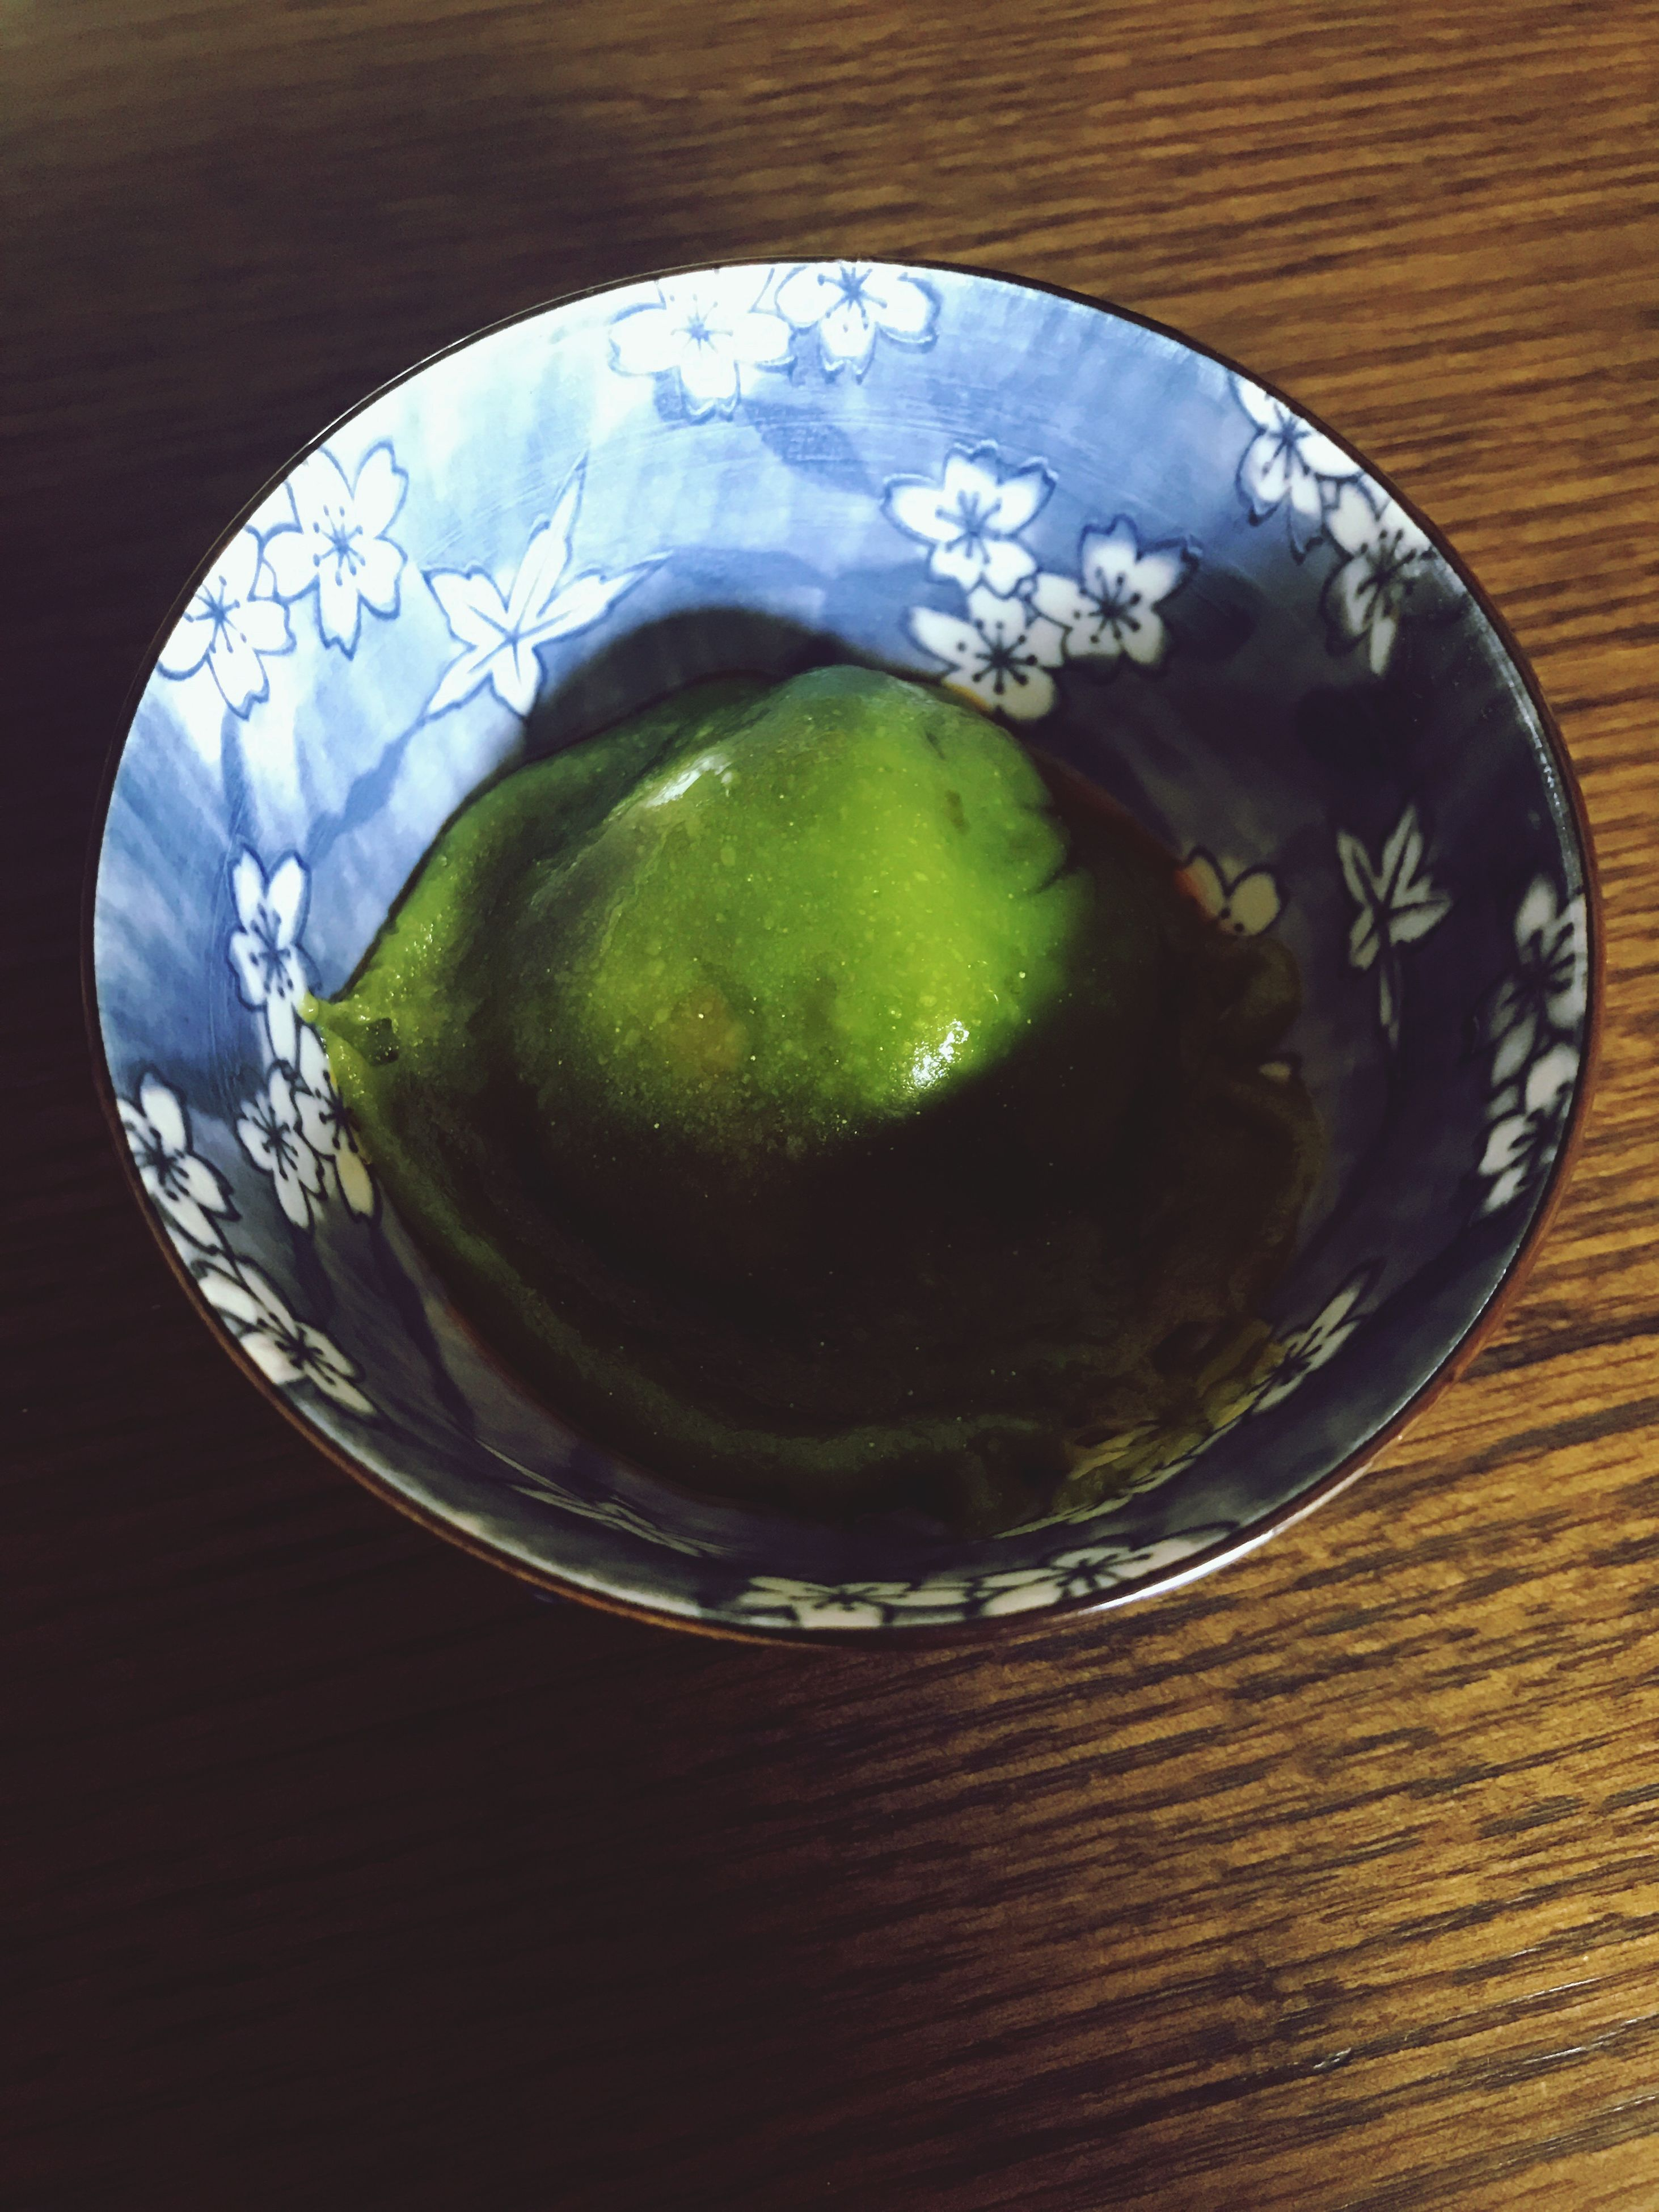 food and drink, freshness, table, high angle view, drink, directly above, refreshment, no people, indoors, close-up, healthy eating, food, green color, drinking glass, plate, ready-to-eat, temptation, water, day